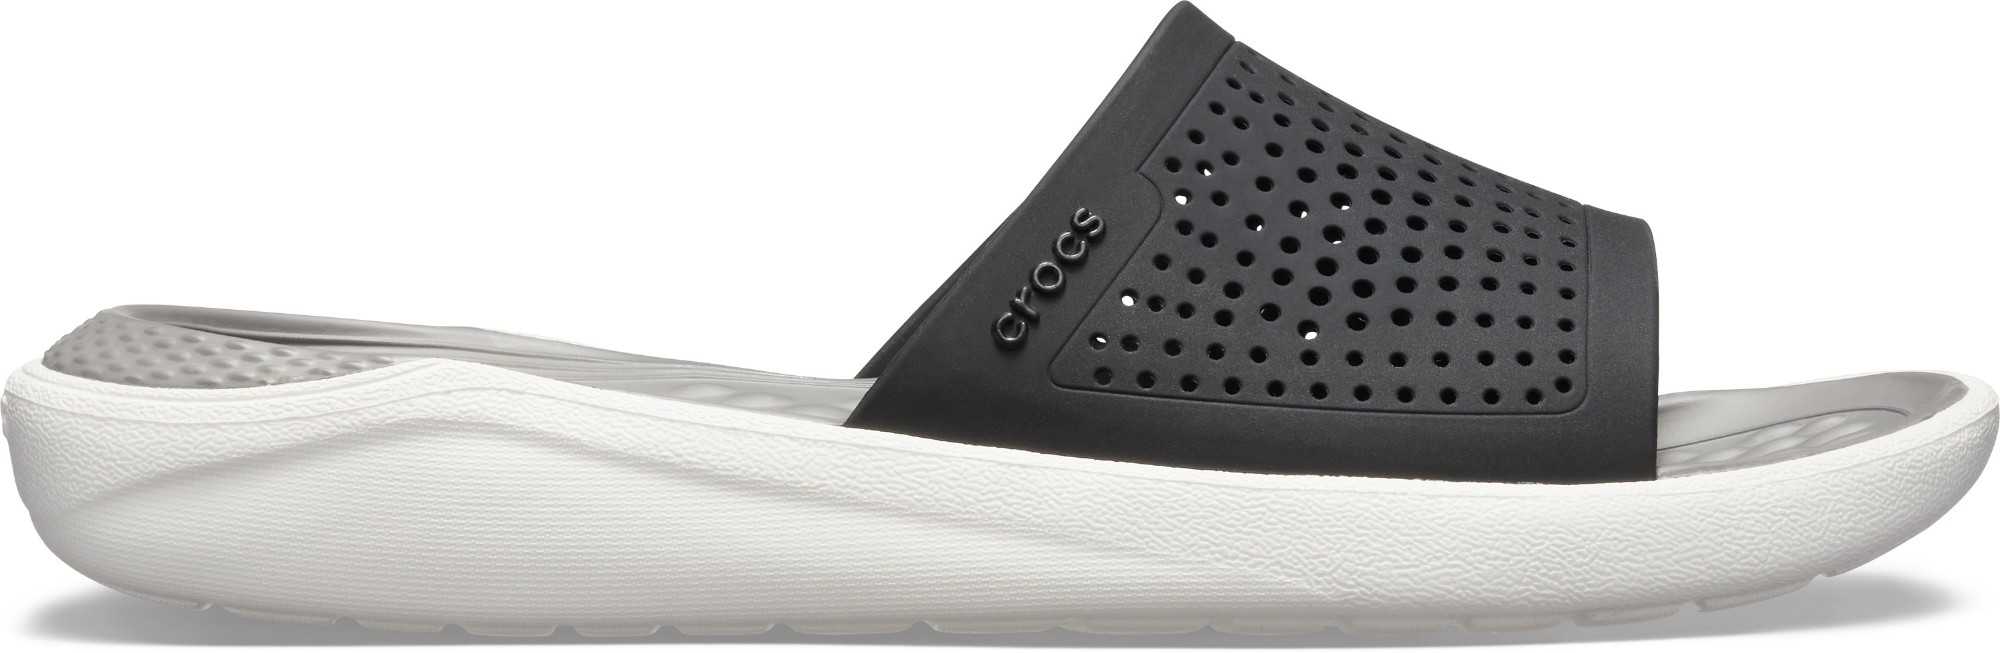 Crocs™ LiteRide Slide Black/Smoke 36,5